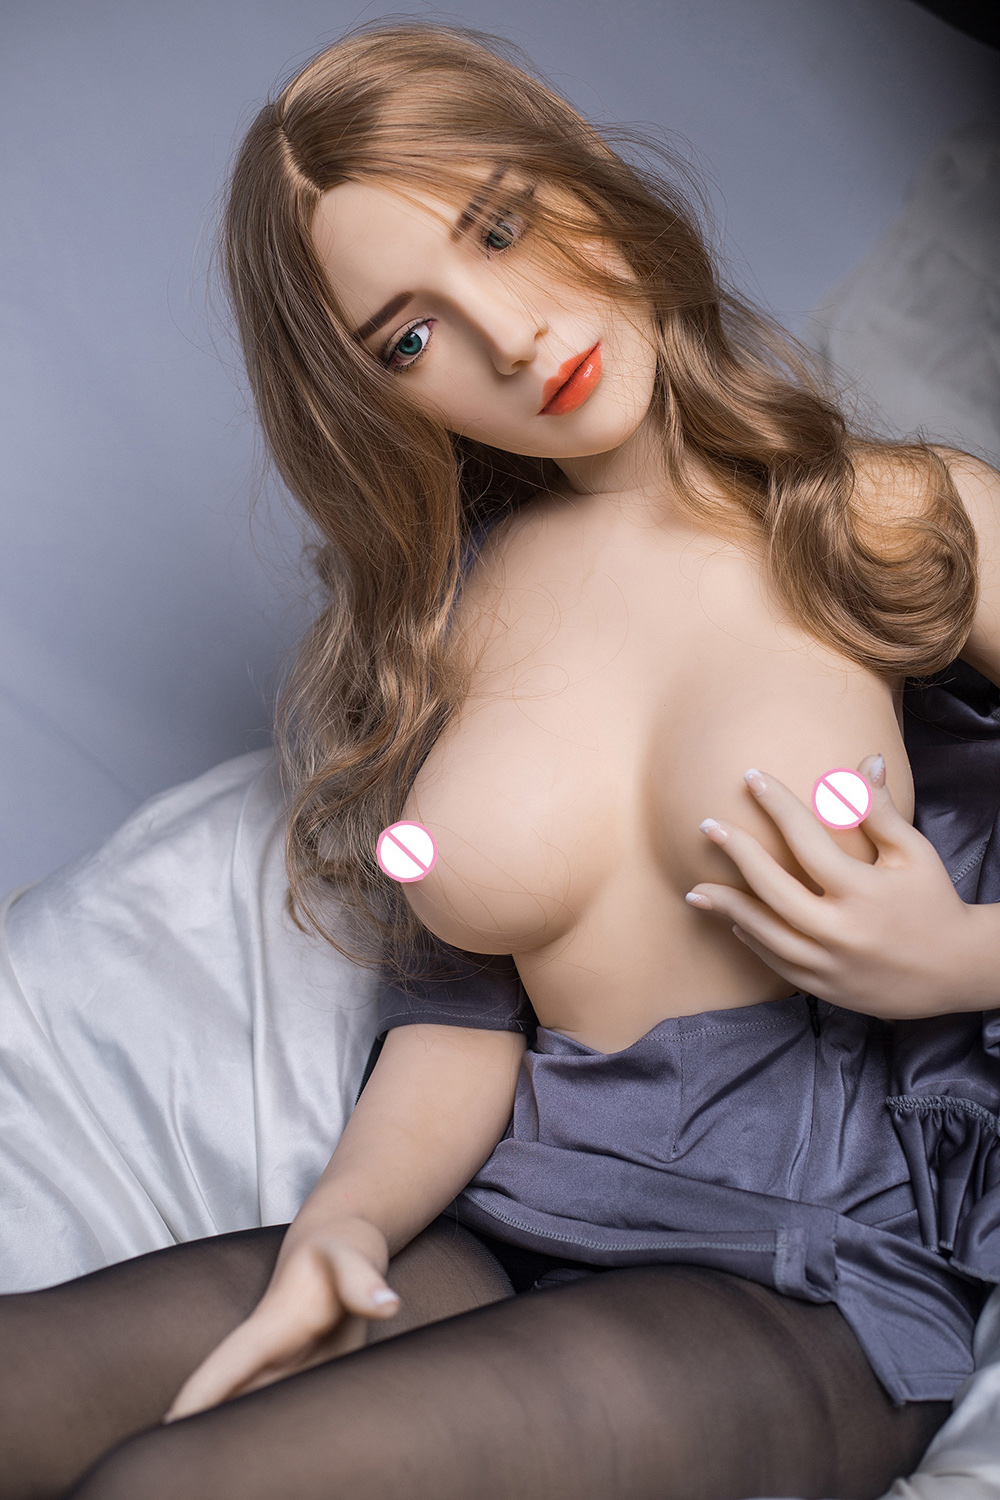 <font><b>Silicone</b></font> Lifelike Full Body TPE <font><b>Sex</b></font> <font><b>Doll</b></font> Realistic Sexual 3 Holes with Real Oral, Anal, Vaginal <font><b>sex</b></font> 170cm 5.57ft <font><b>Torso</b></font> Big Boobs image